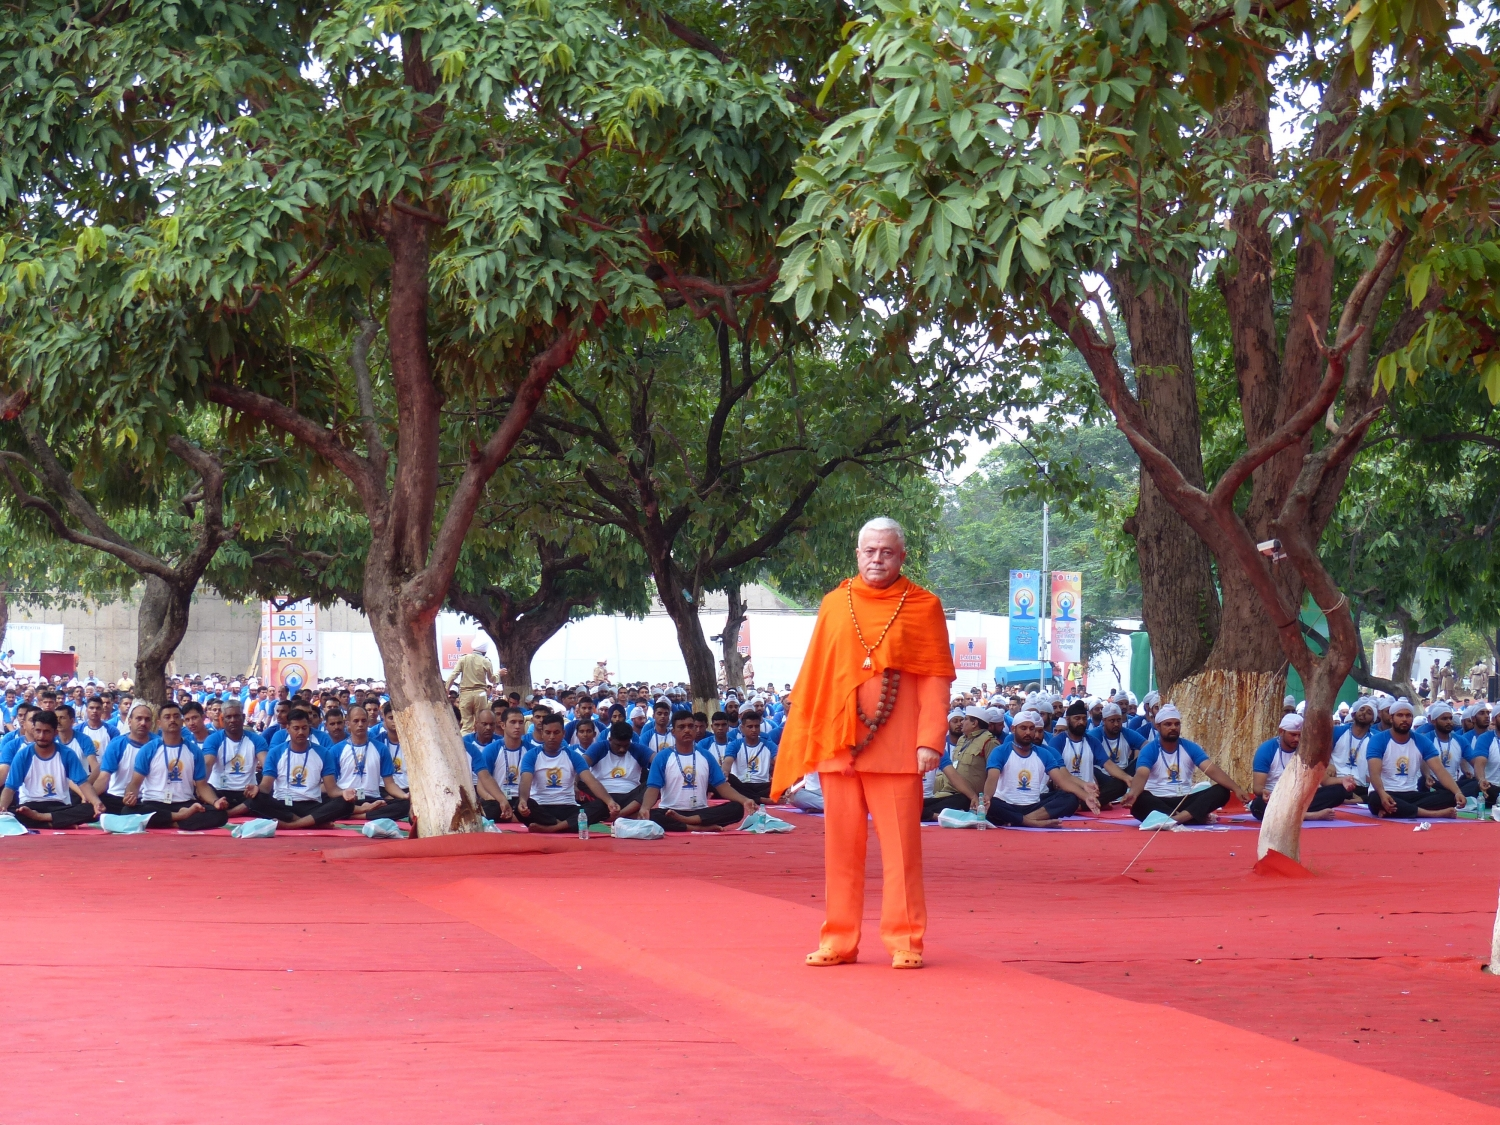 International Day of Yoga / IDY 2016 - Chandigarh, India - Directed by Shrí Narendra Modi